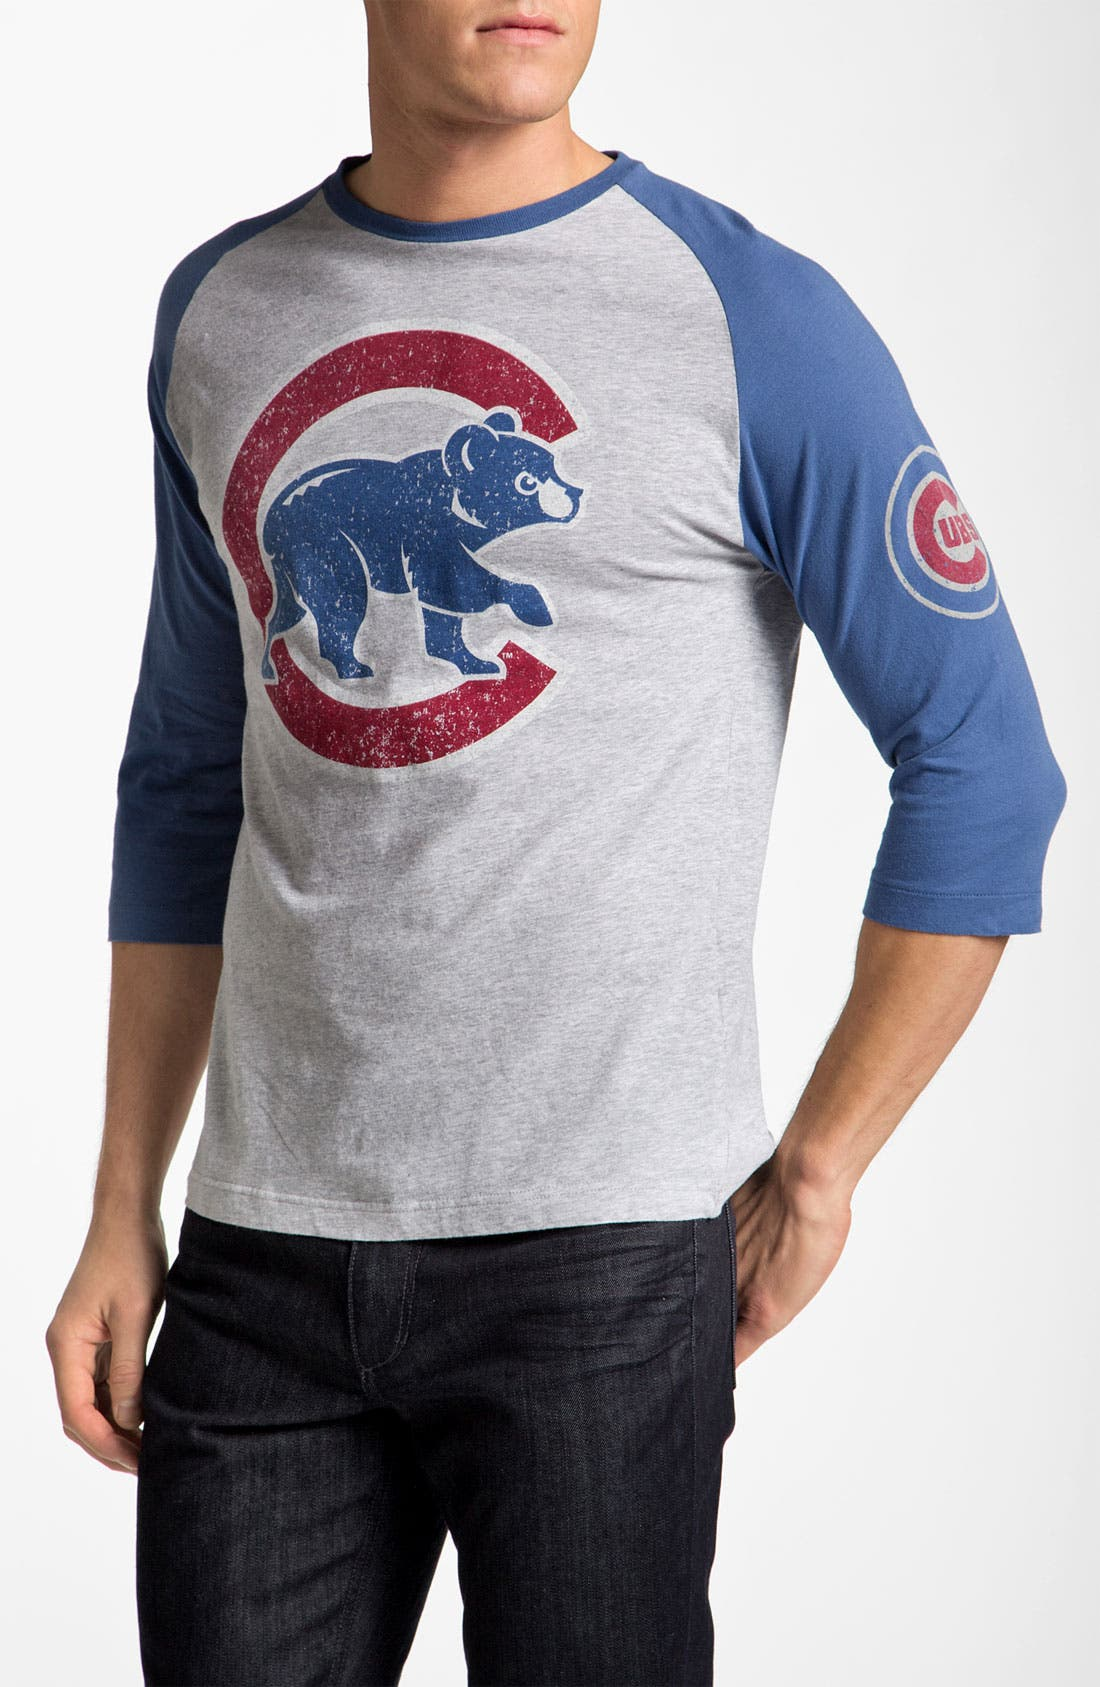 Alternate Image 1 Selected - Wright & Ditson 'Chicago Cubs' Baseball T-Shirt